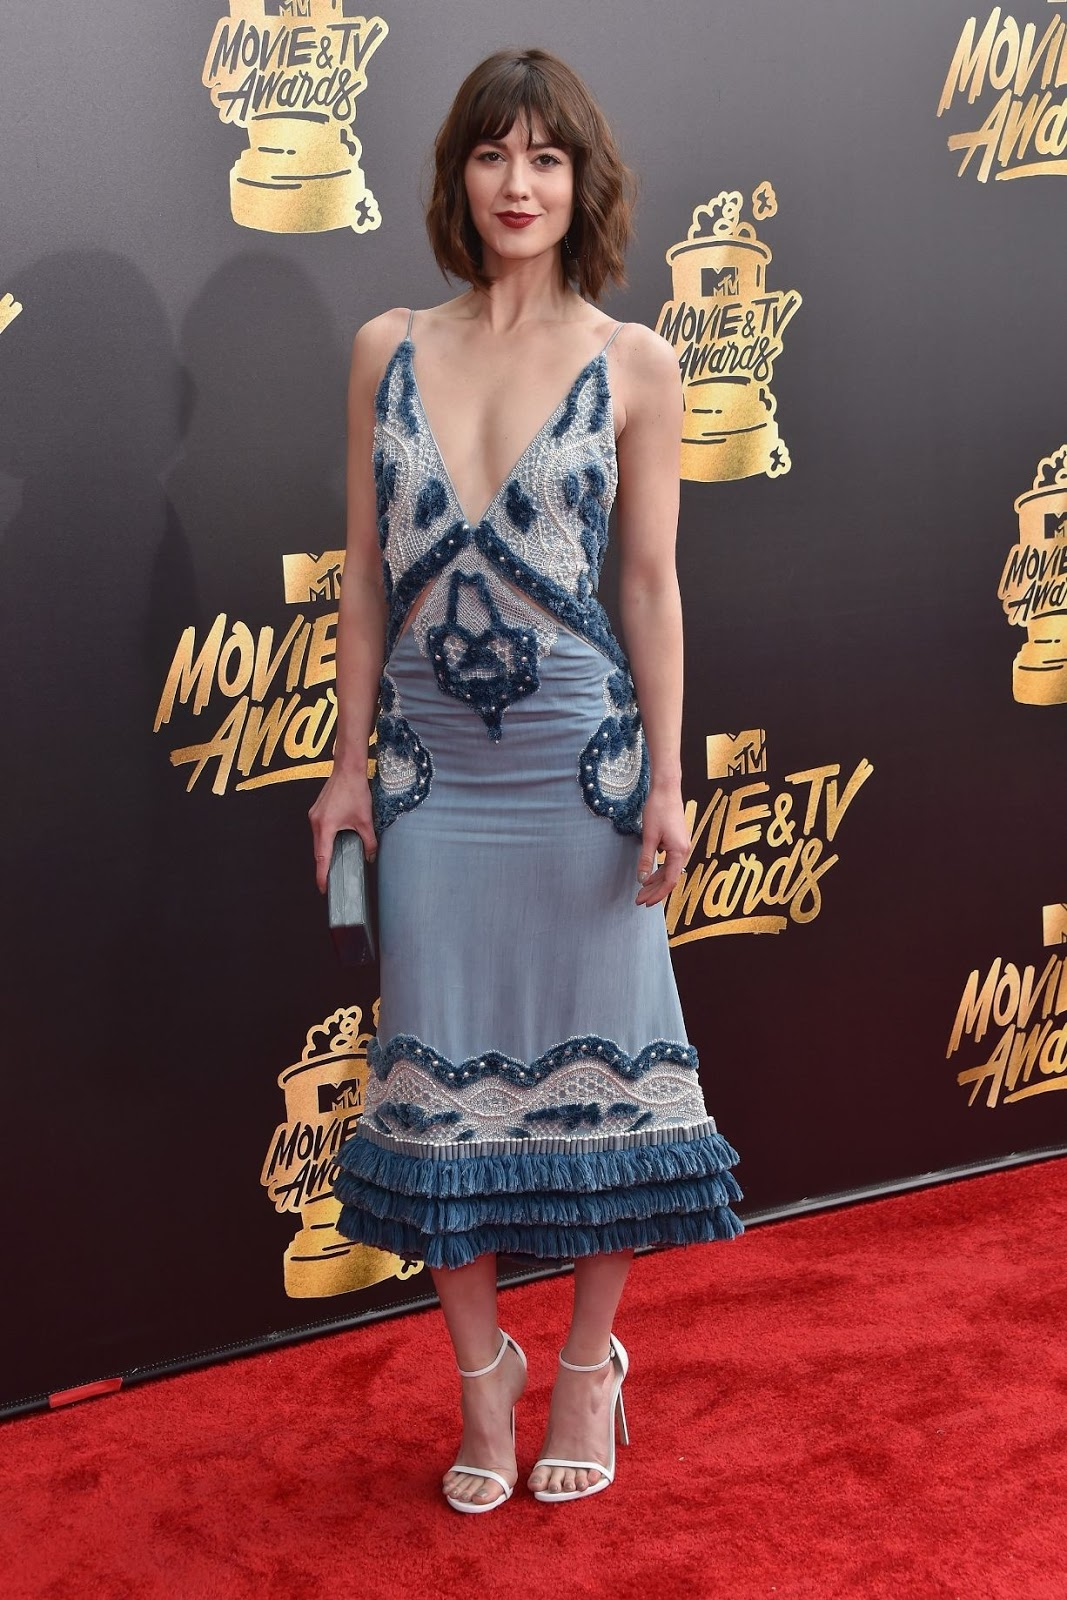 mtv movie awards 2017 mary elizabeth winstead